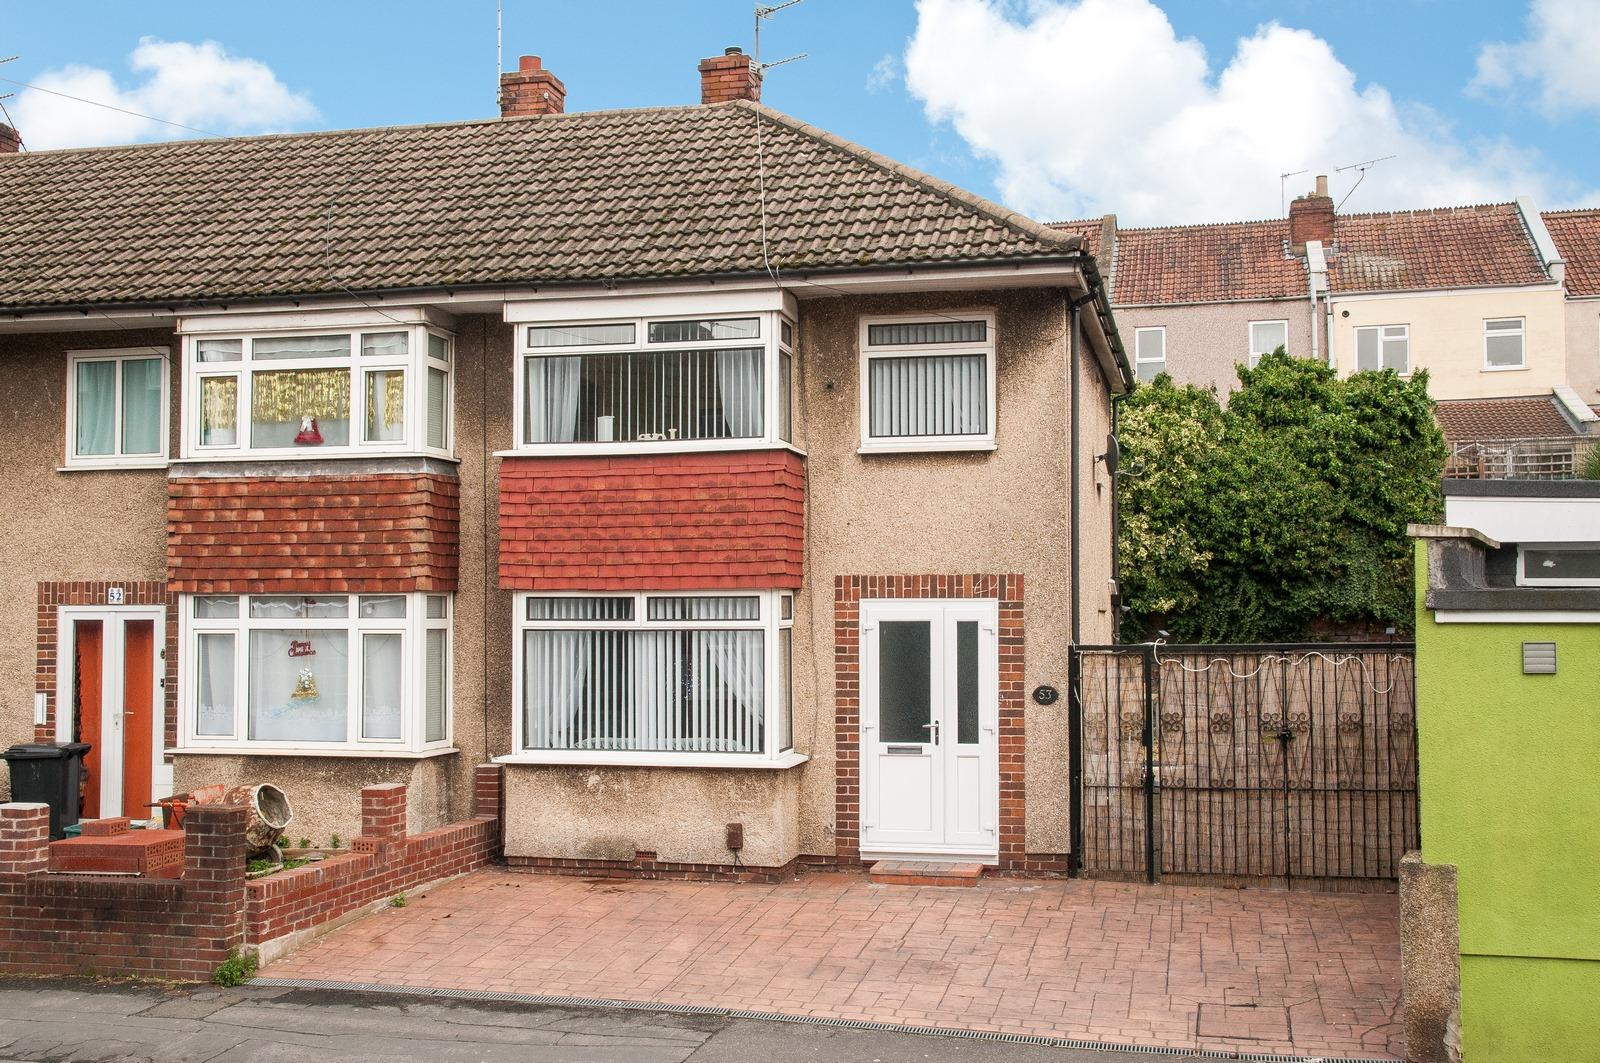 3 bed house to rent in Chalks Road, Bristol, BS5